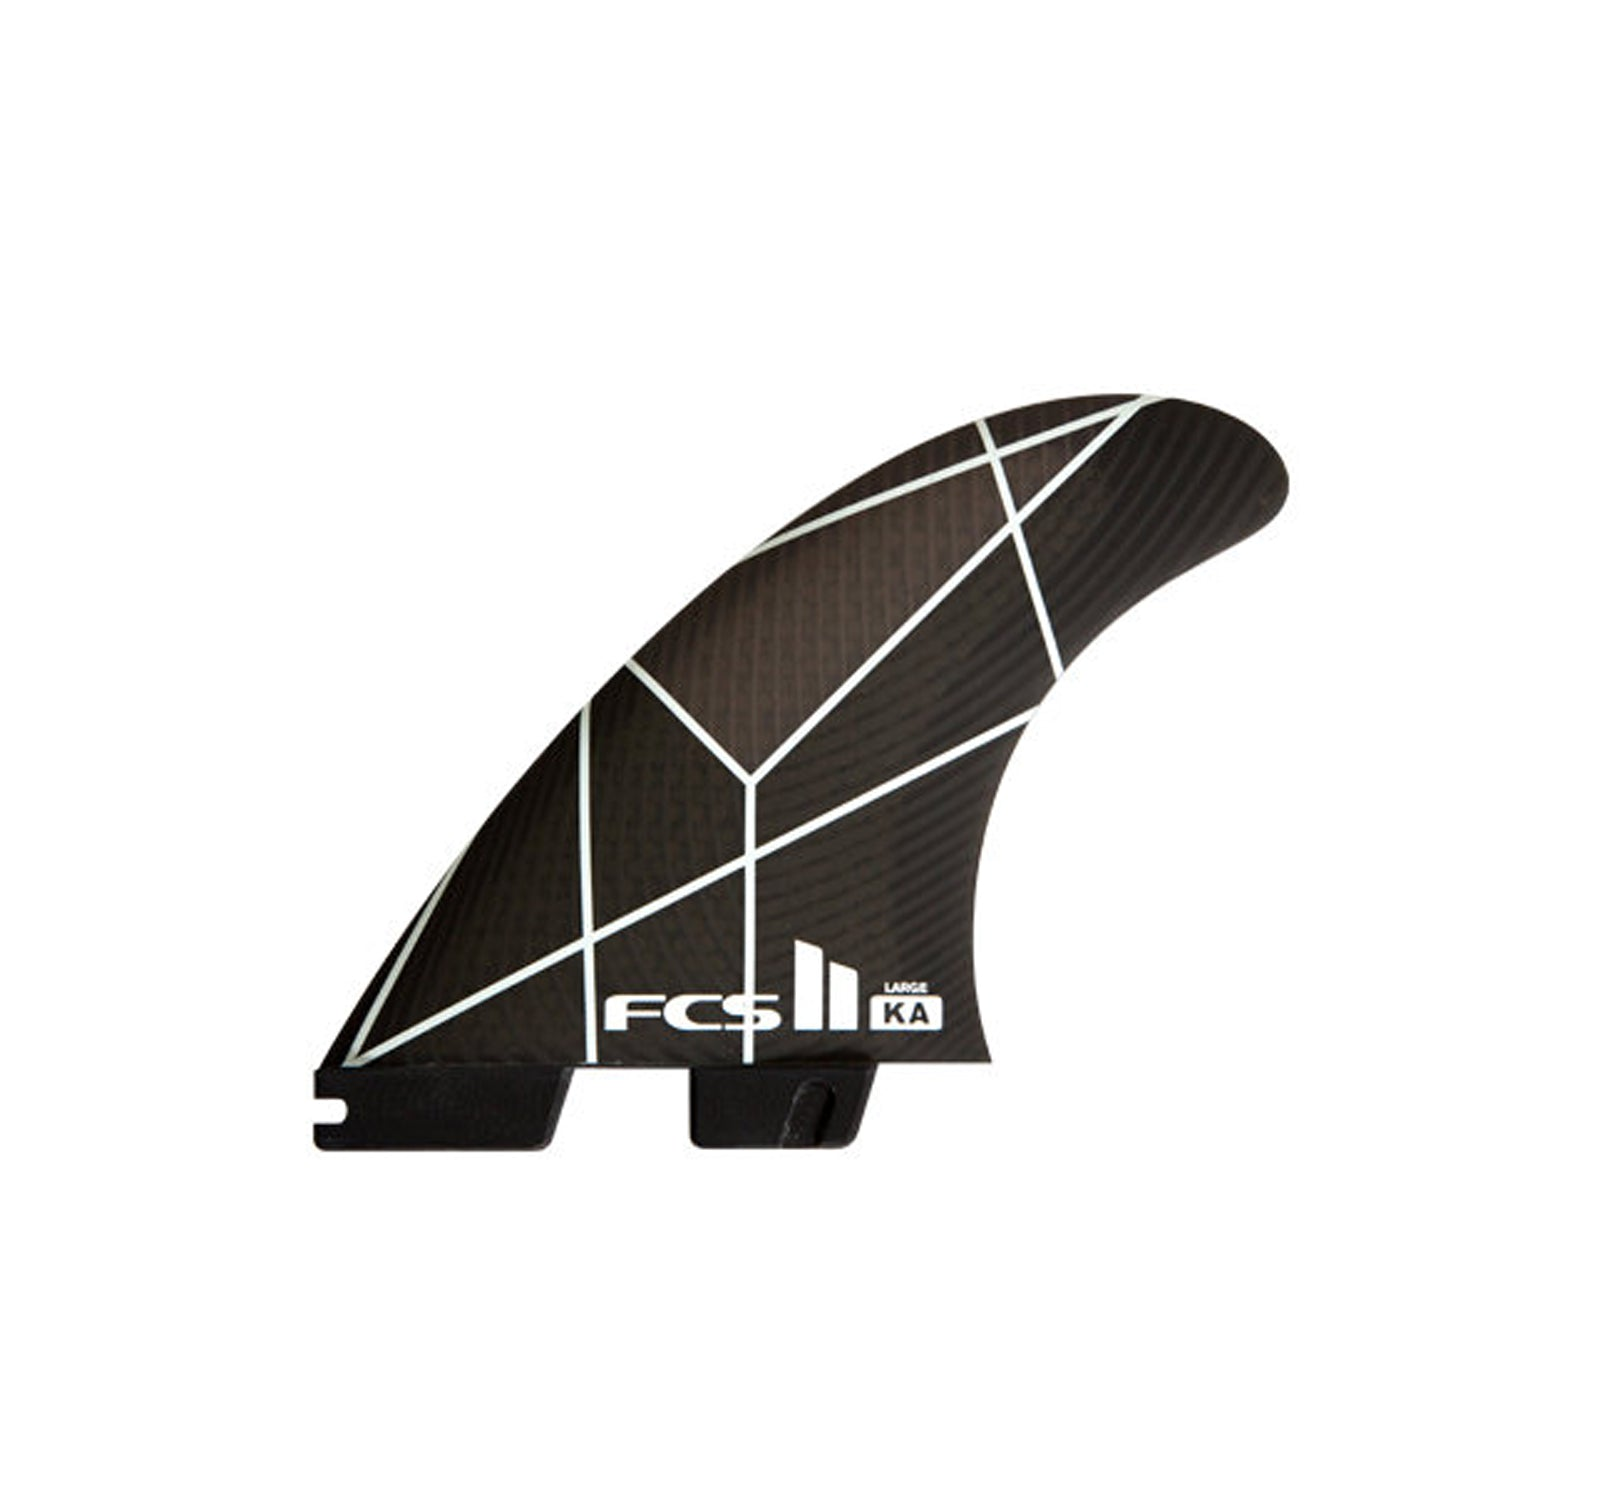 FCS II KA Performance Core Small Thruster Fin Set